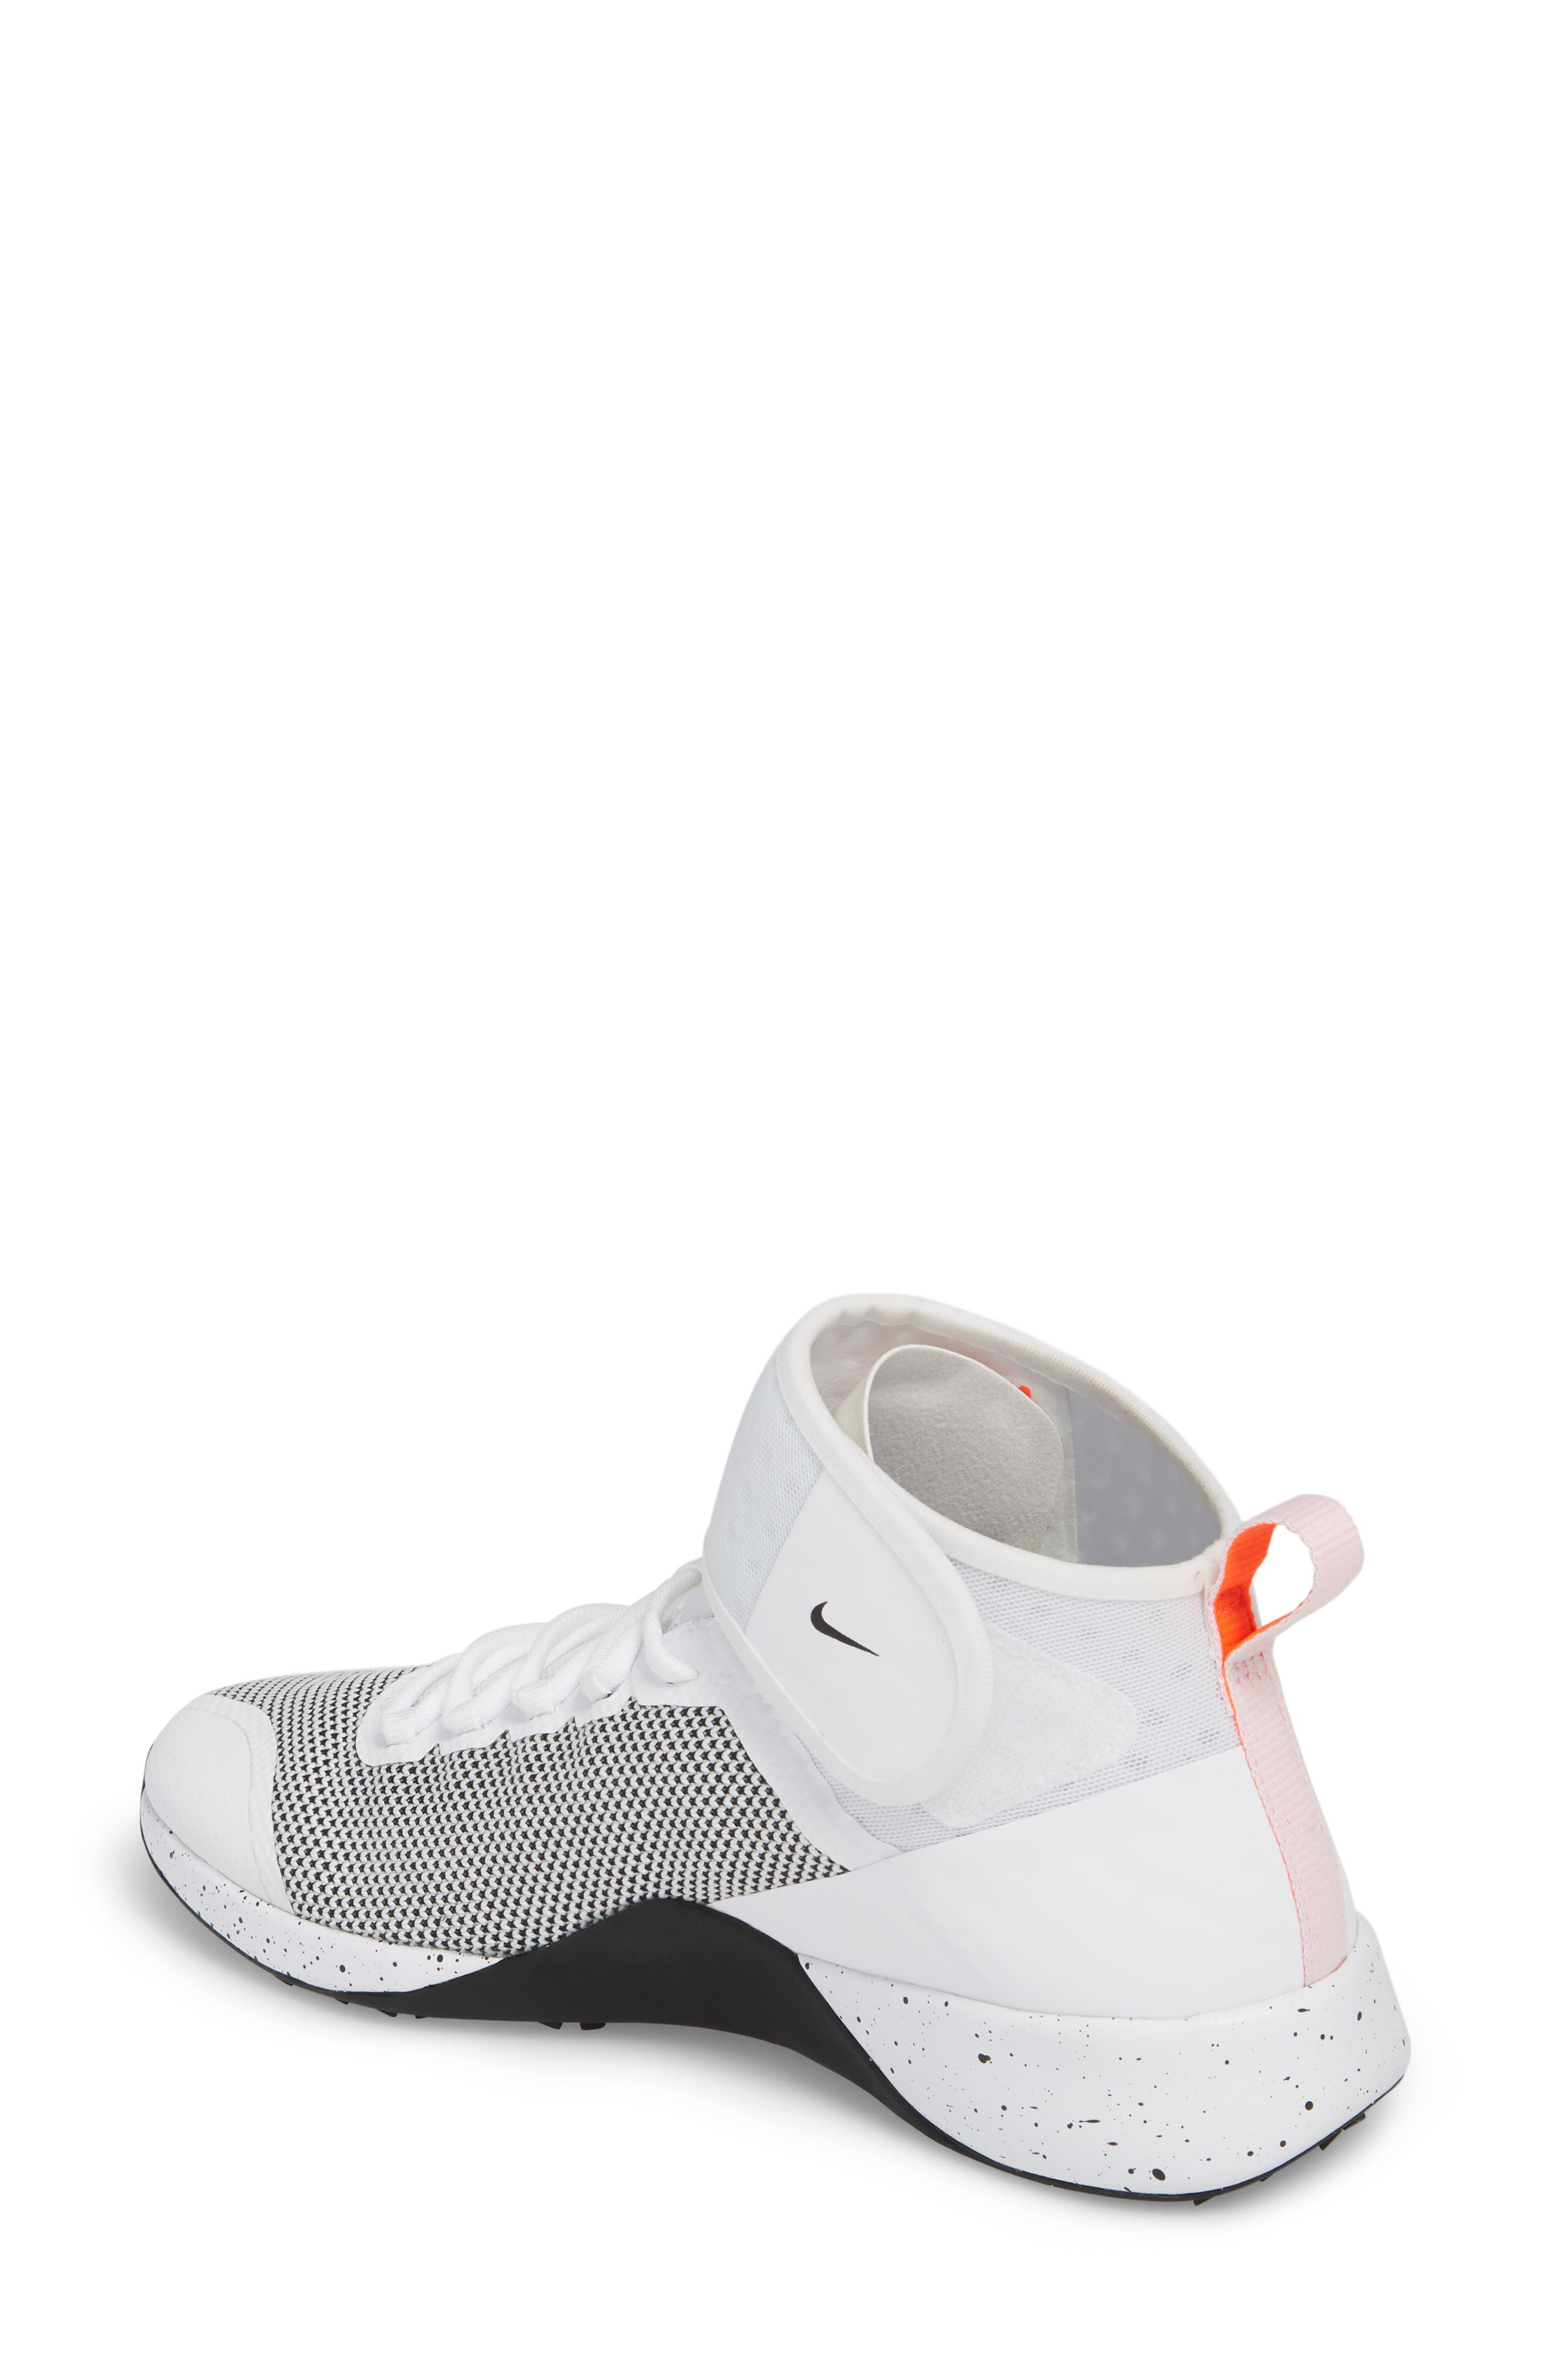 NikeLab Air Zoom Strong 2 Training Shoe,                             Alternate thumbnail 2, color,                             WHITE/ BLACK/ TOTAL CRIMSON